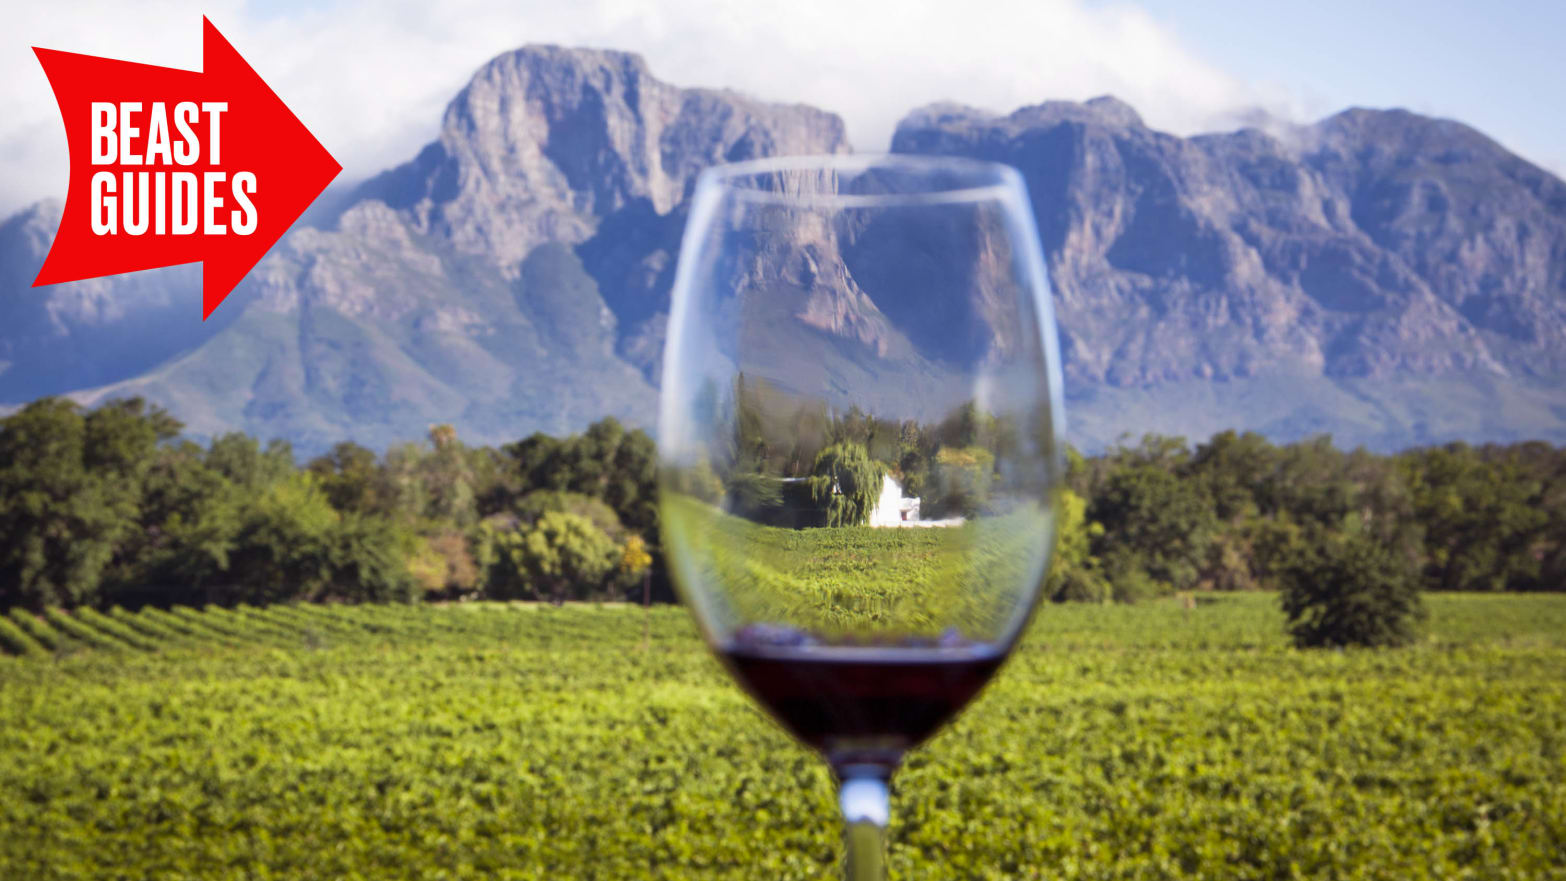 South African Wine Country Guide: Where to Eat, Stay, and Drink